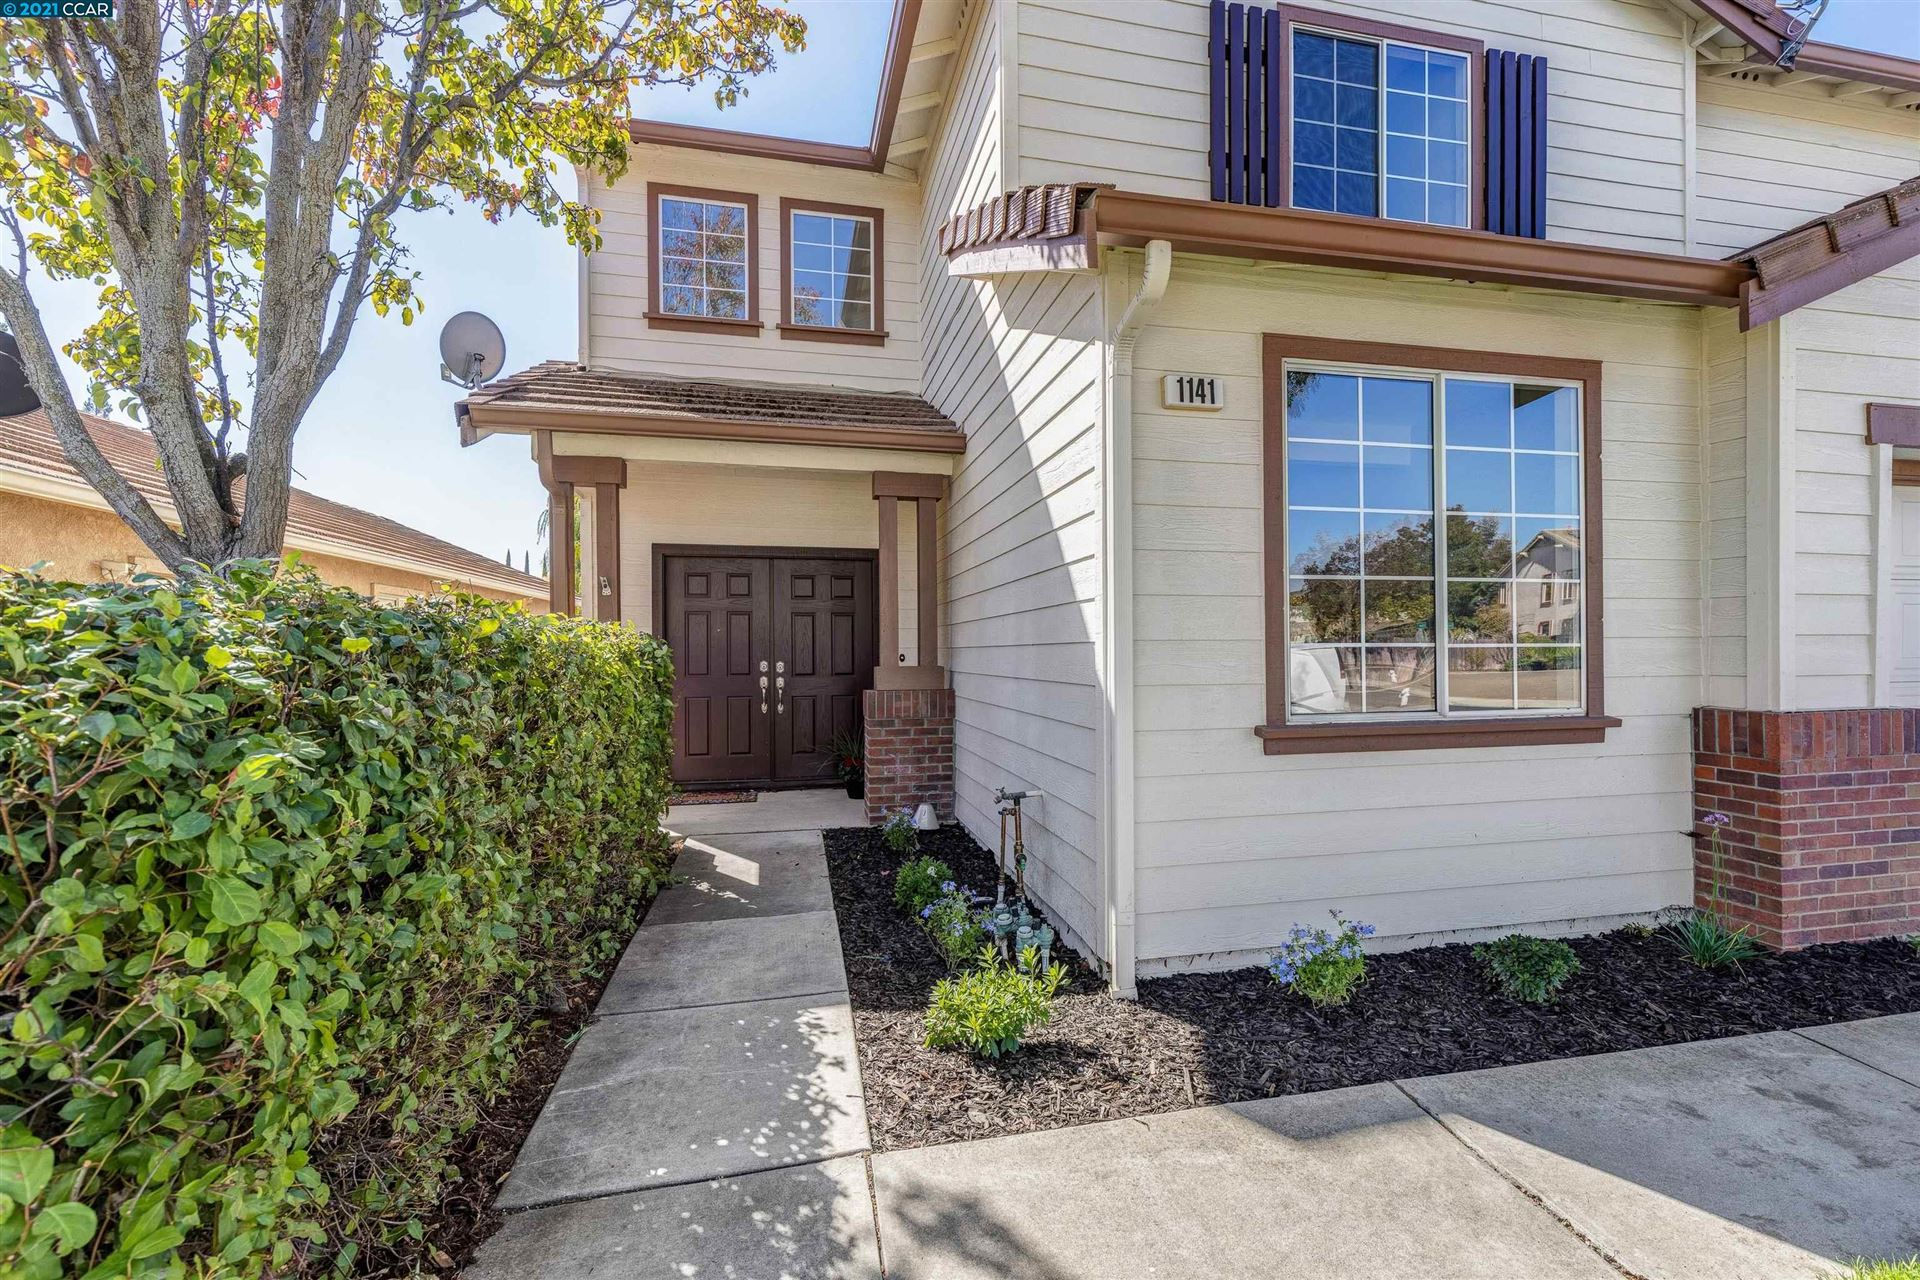 Photo of 1141 Stonecrest Dr, Antioch, CA 94531 (MLS # 40971277)